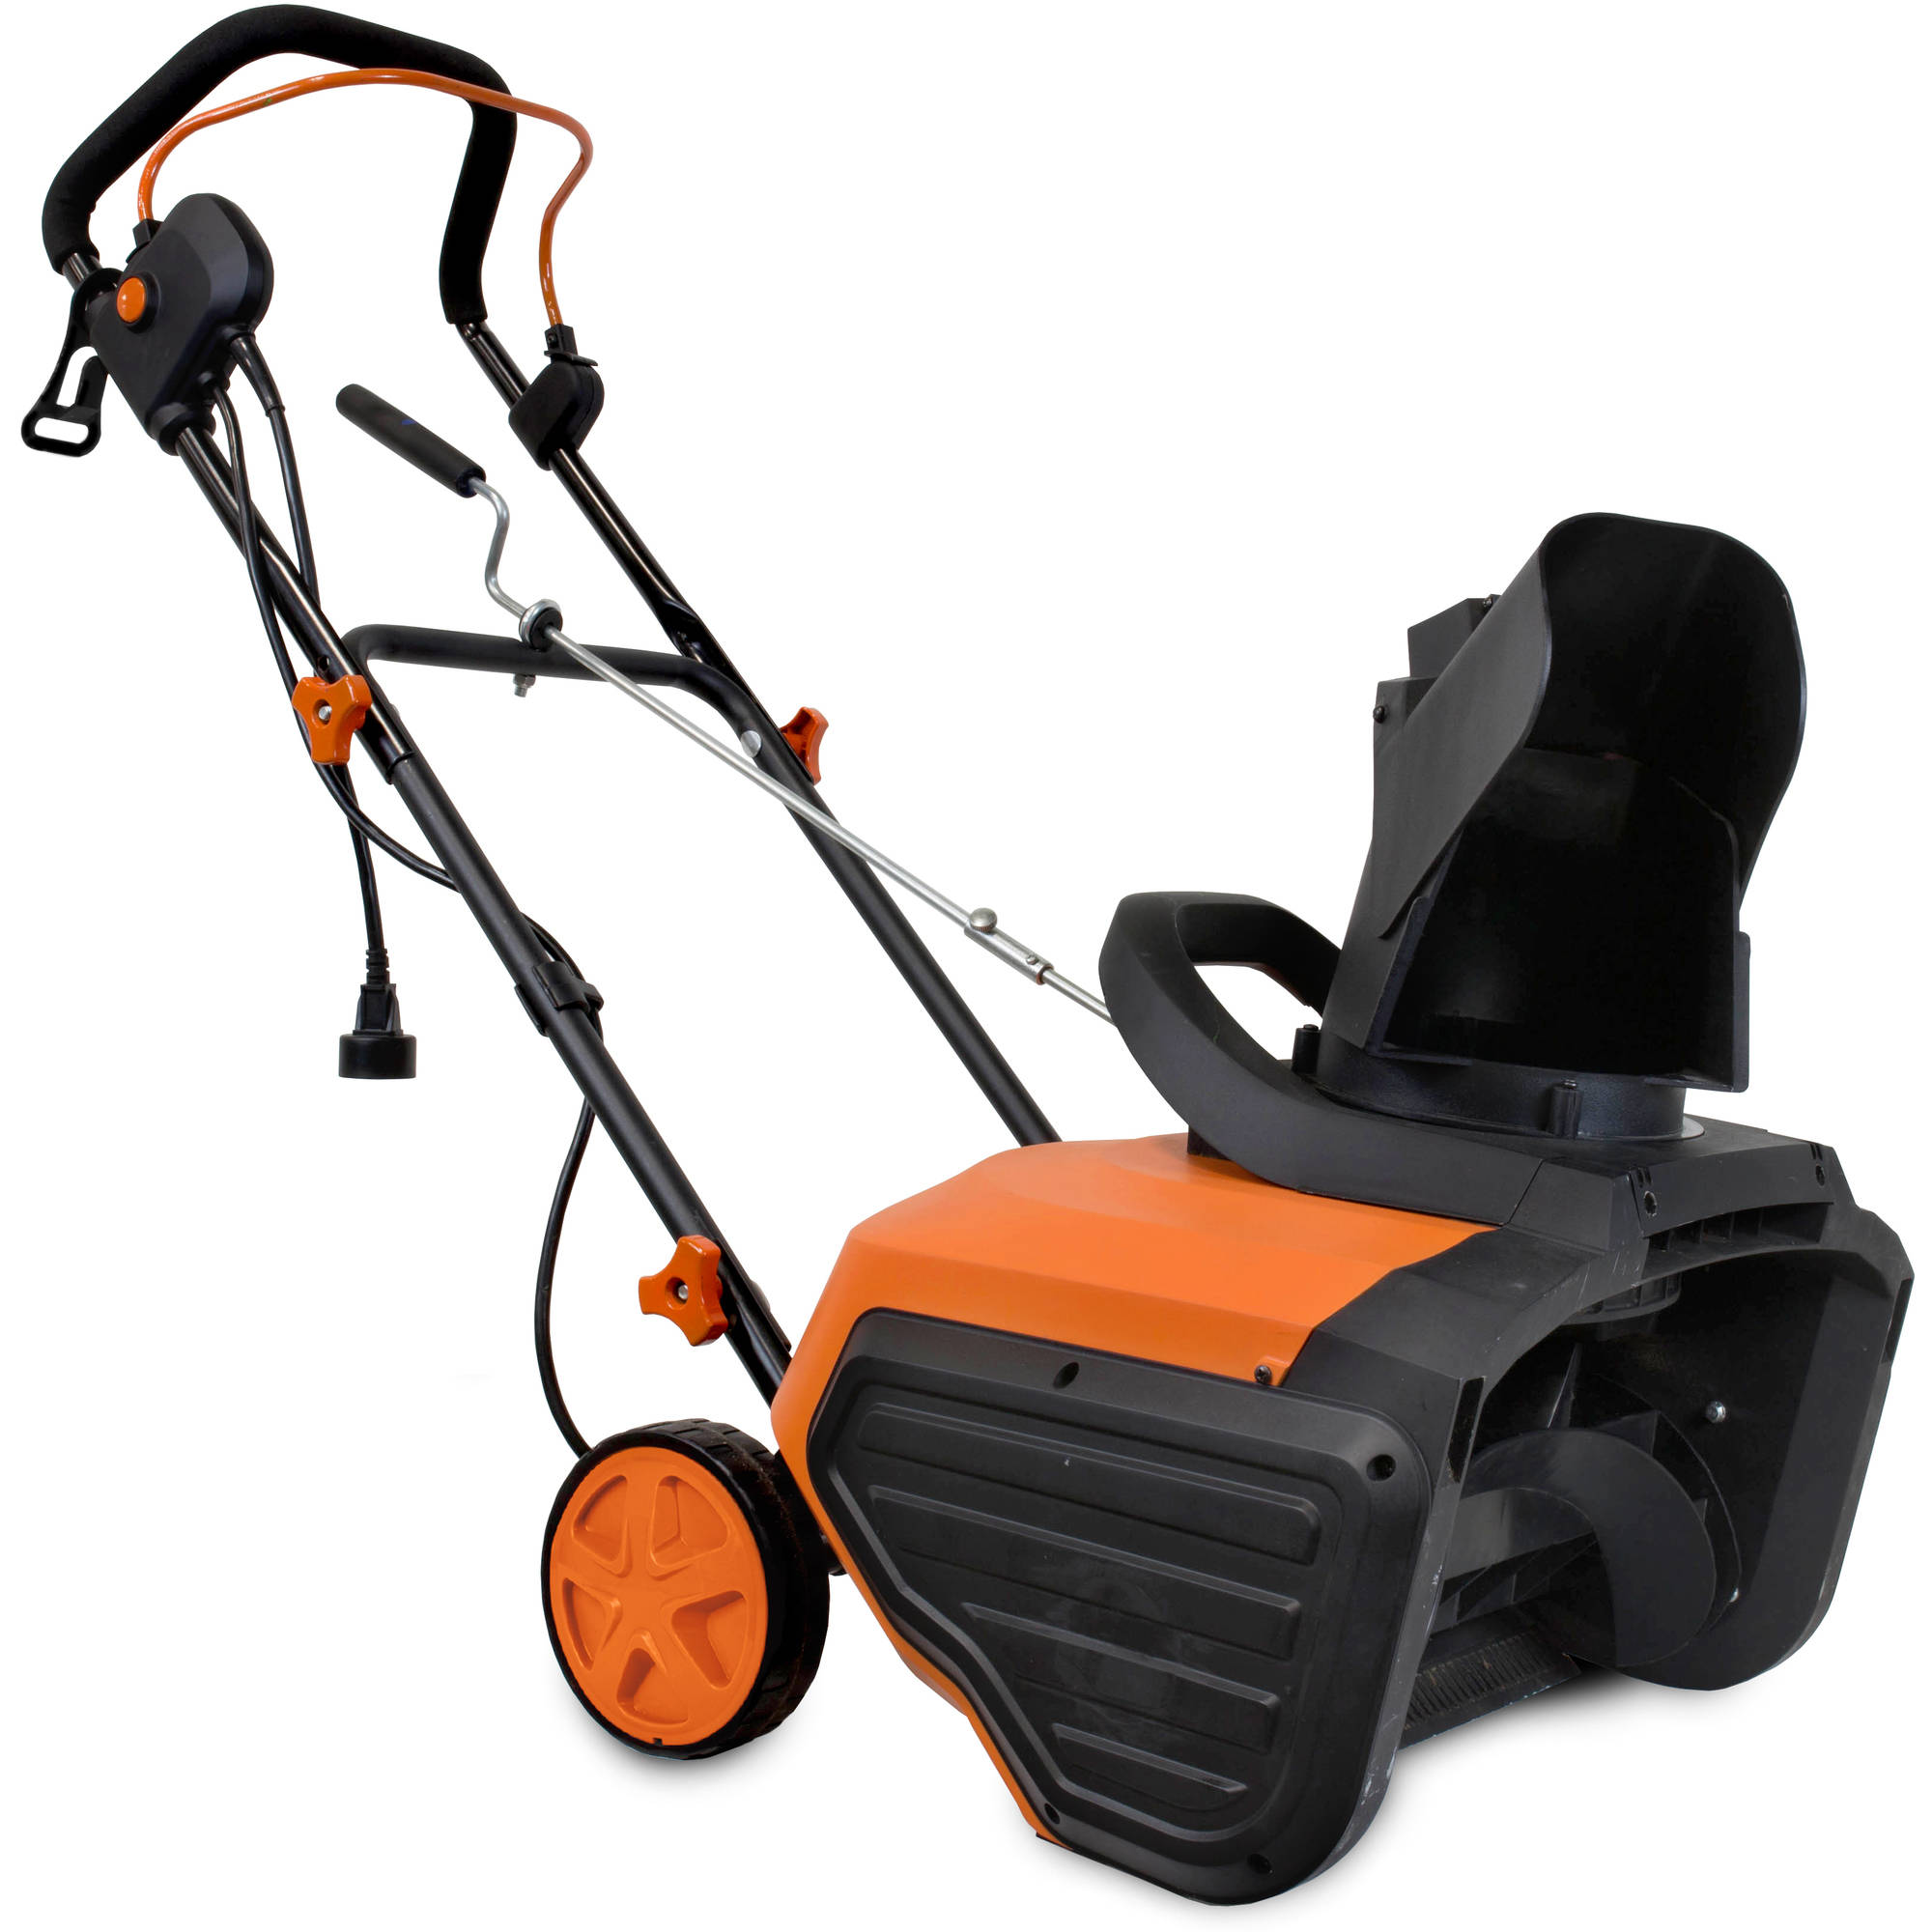 WEN Snow Blaster 13A Electric Snow Thrower, 18""